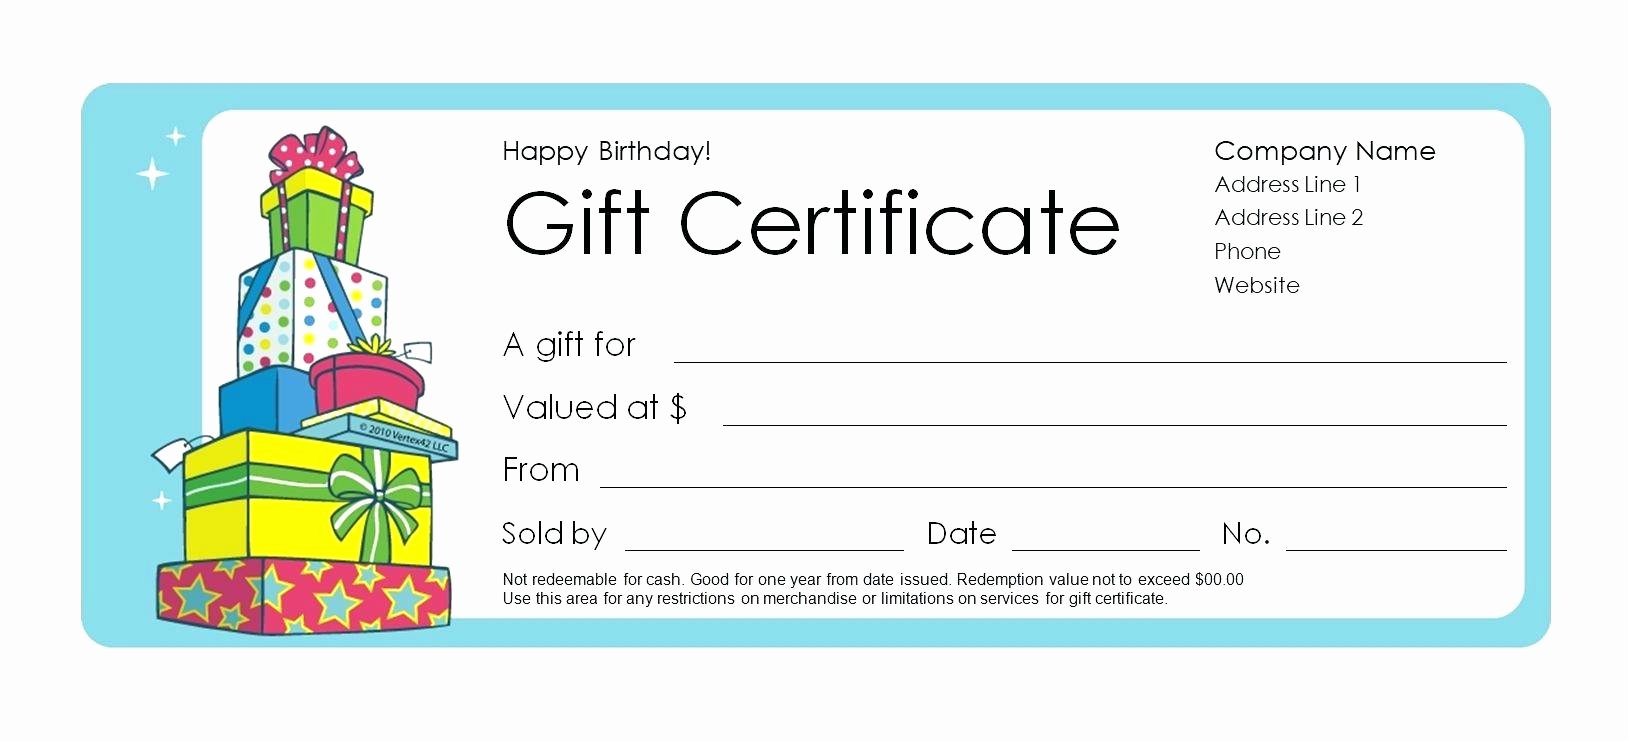 Gift Certificate Template Word Free New Template Microsoft Word Gift Certificate Template